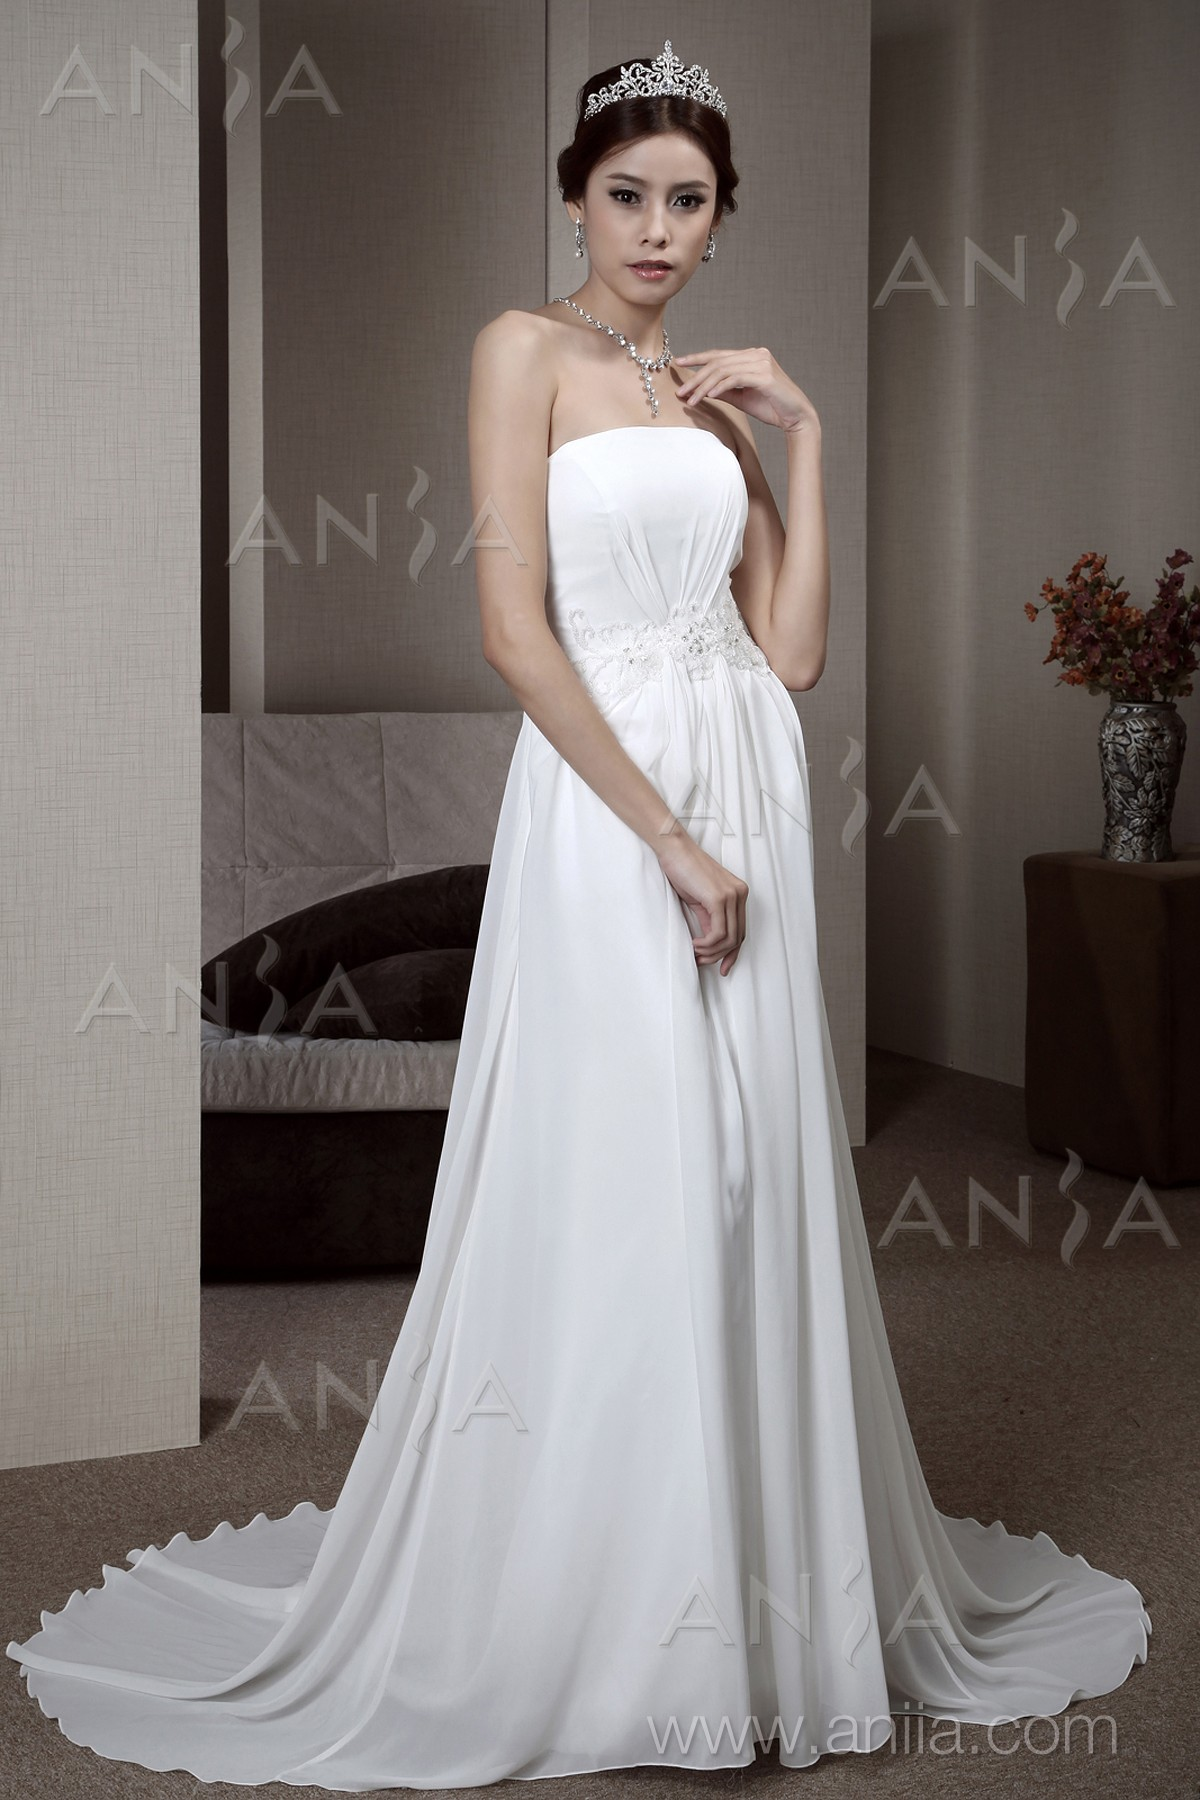 Greek Goddess Wedding Dress Strapless images